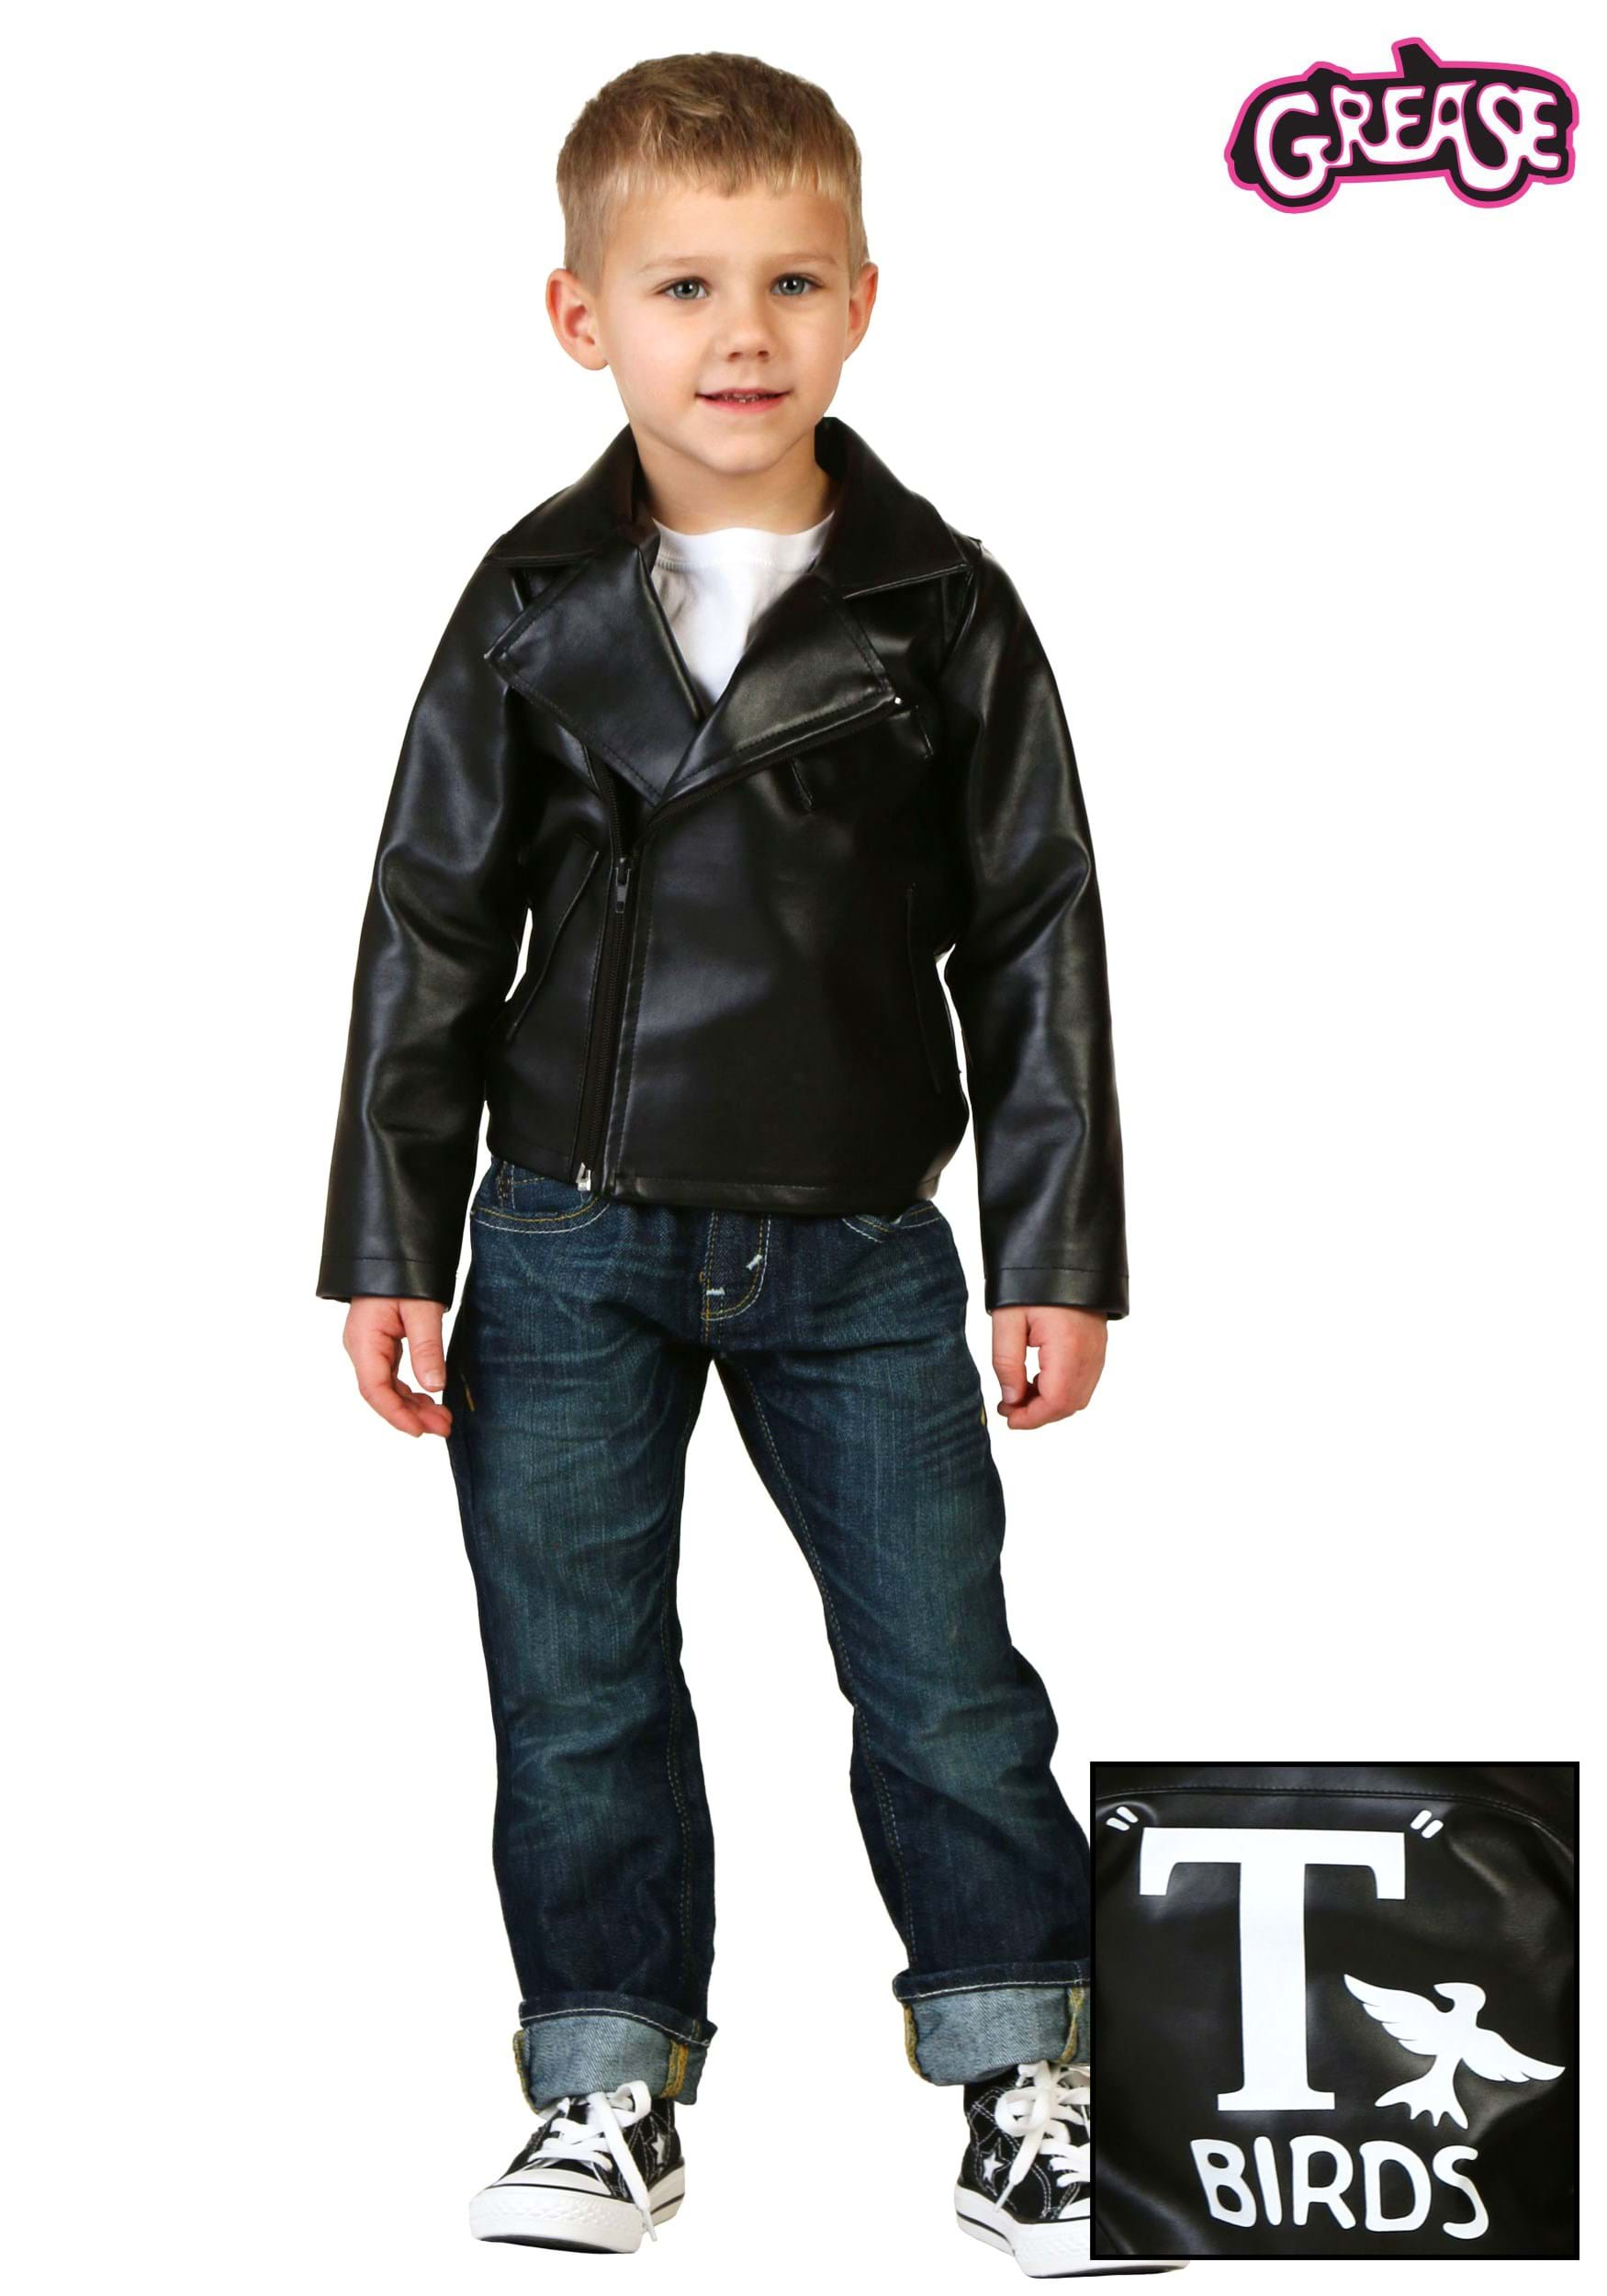 Toddler Grease T Birds Jacket Costume